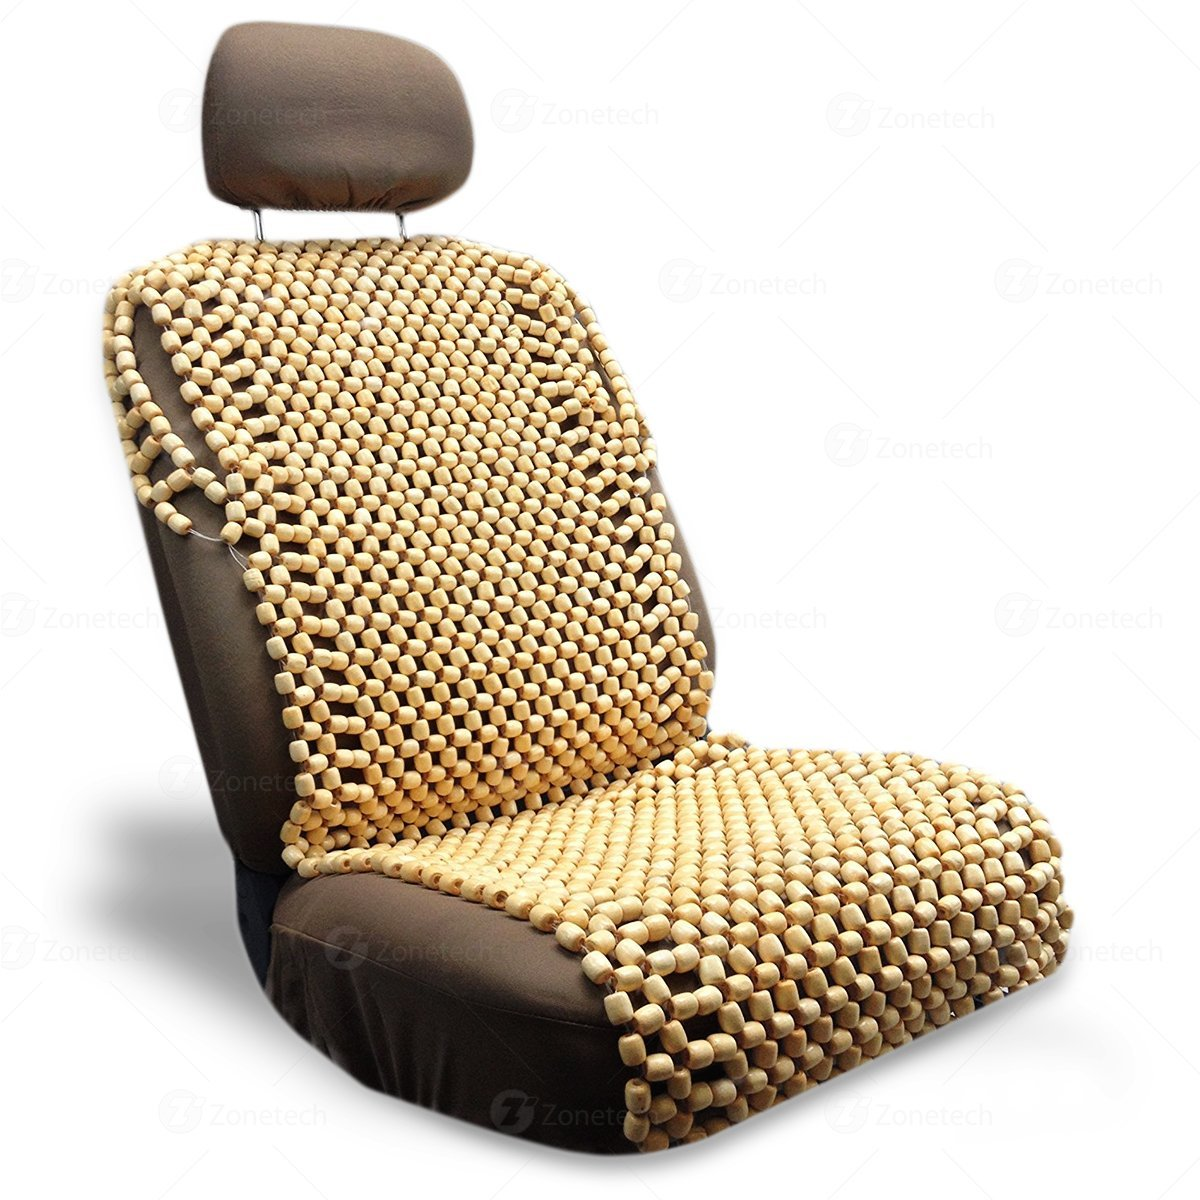 Zone Tech Natural Royal Wood Bead Seat Cover Massage Cool Premium Comfort  Cushion   Reduces Fatigue